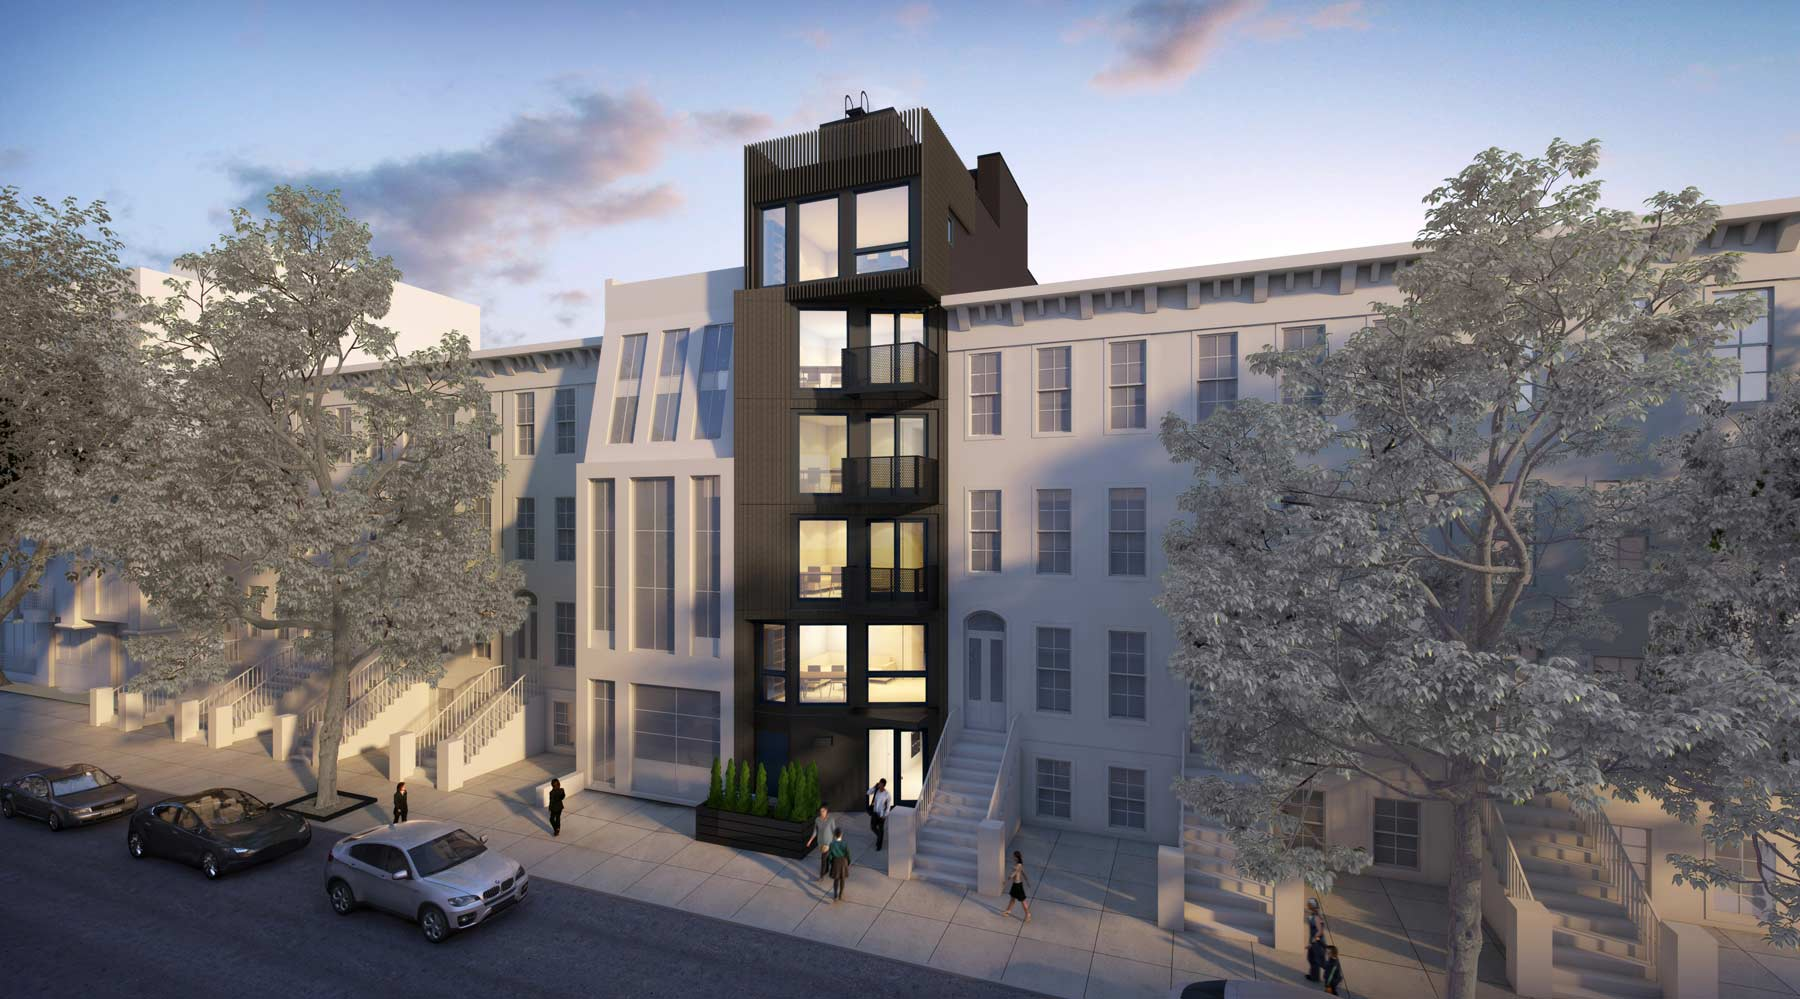 Modular Harlem NY Architecture for New Residential Development